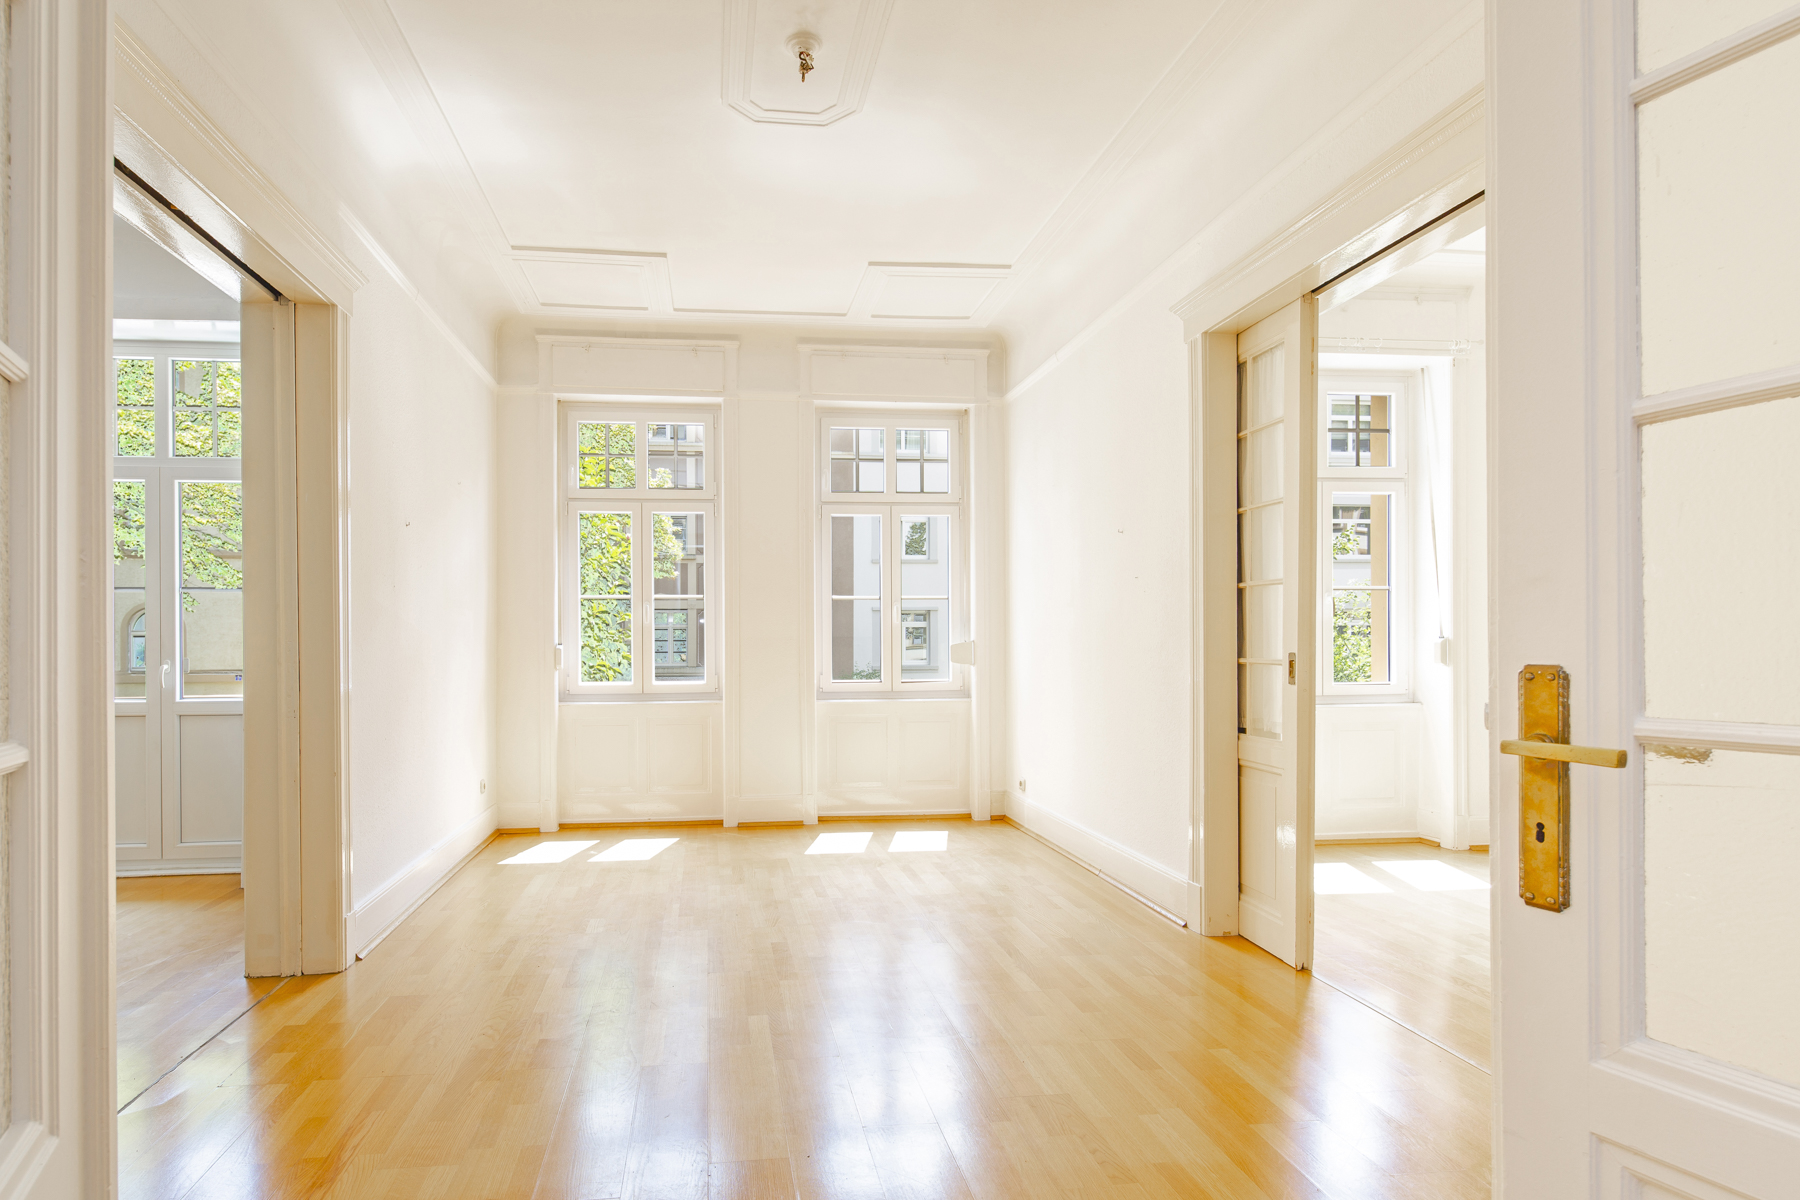 Multi-Family Homes for Sale at Charming building with four residential units in the heart of Frankfurt Frankfurt, Hessen 60322 Germany